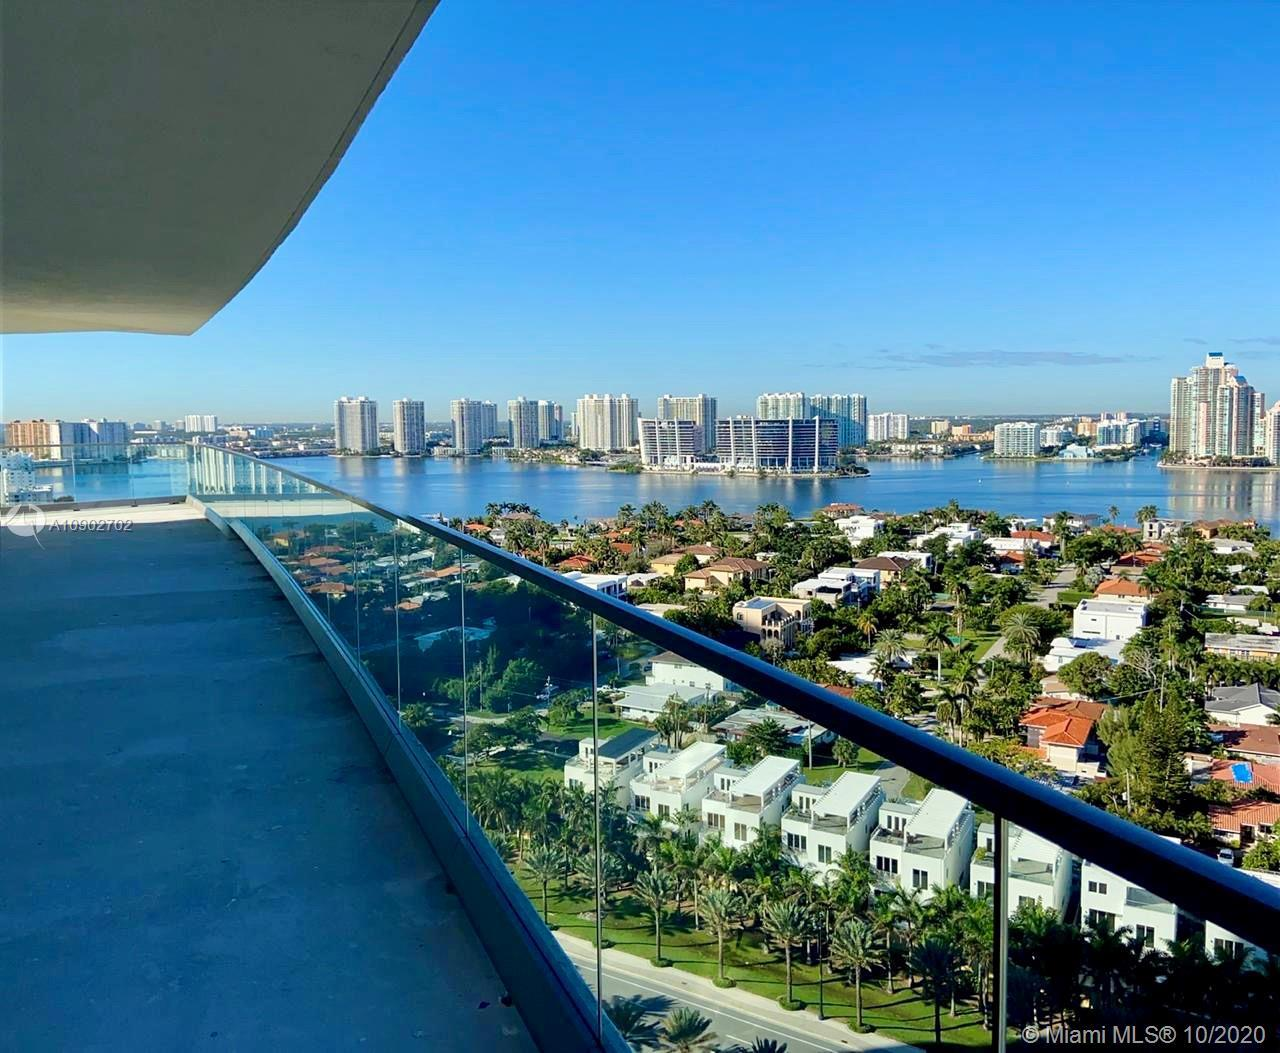 UNBEATABLE PRICE BRAND NEW 2 BED + 2 BATH CORNER UNIT WITH WEST FACING AMAZING VIEWS OF INTRACOASTAL